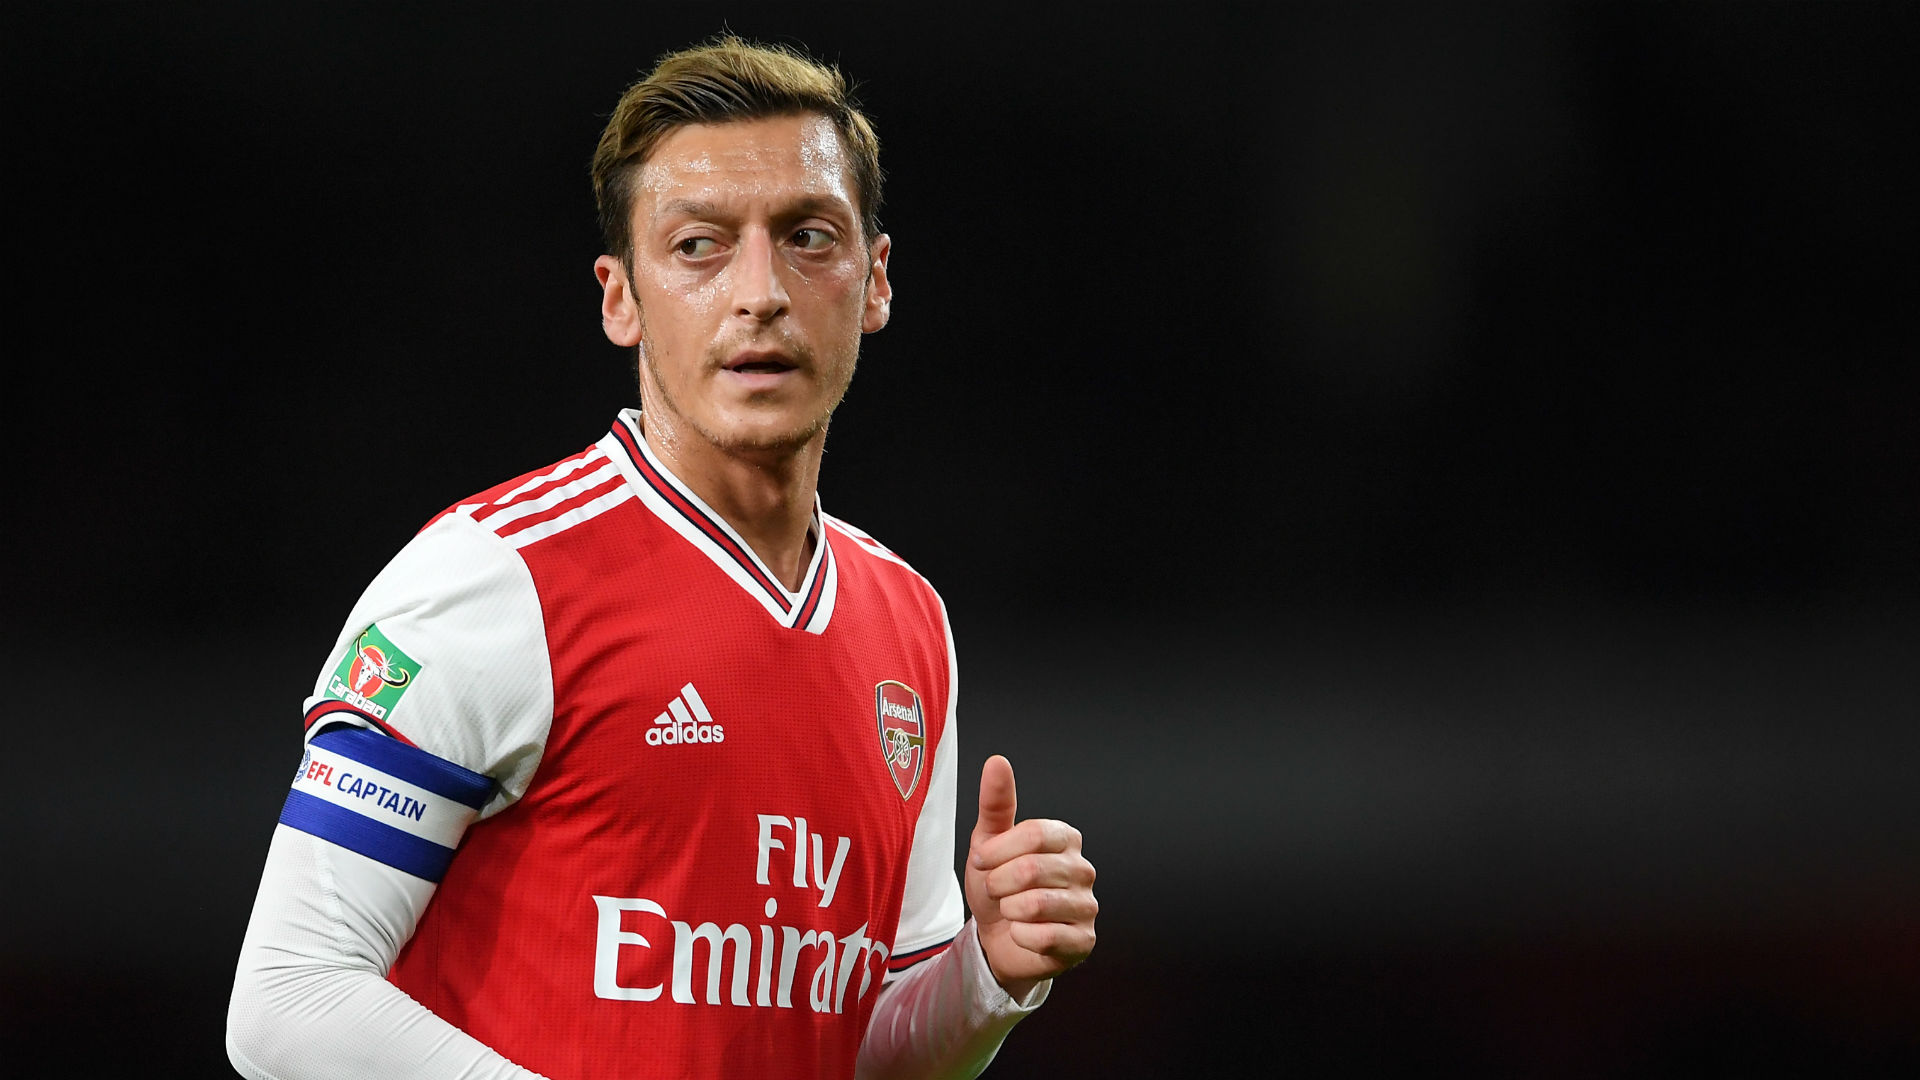 Arsenal forward Mesut Oezil on Thursday said he would see out his contract with the Premier League club which runs through the summer of 2021. Oezil, the Germany World Cup winner who did not play for the club when the season resumed in June after the Coronavirus lockdown, said he would fight his way back […]